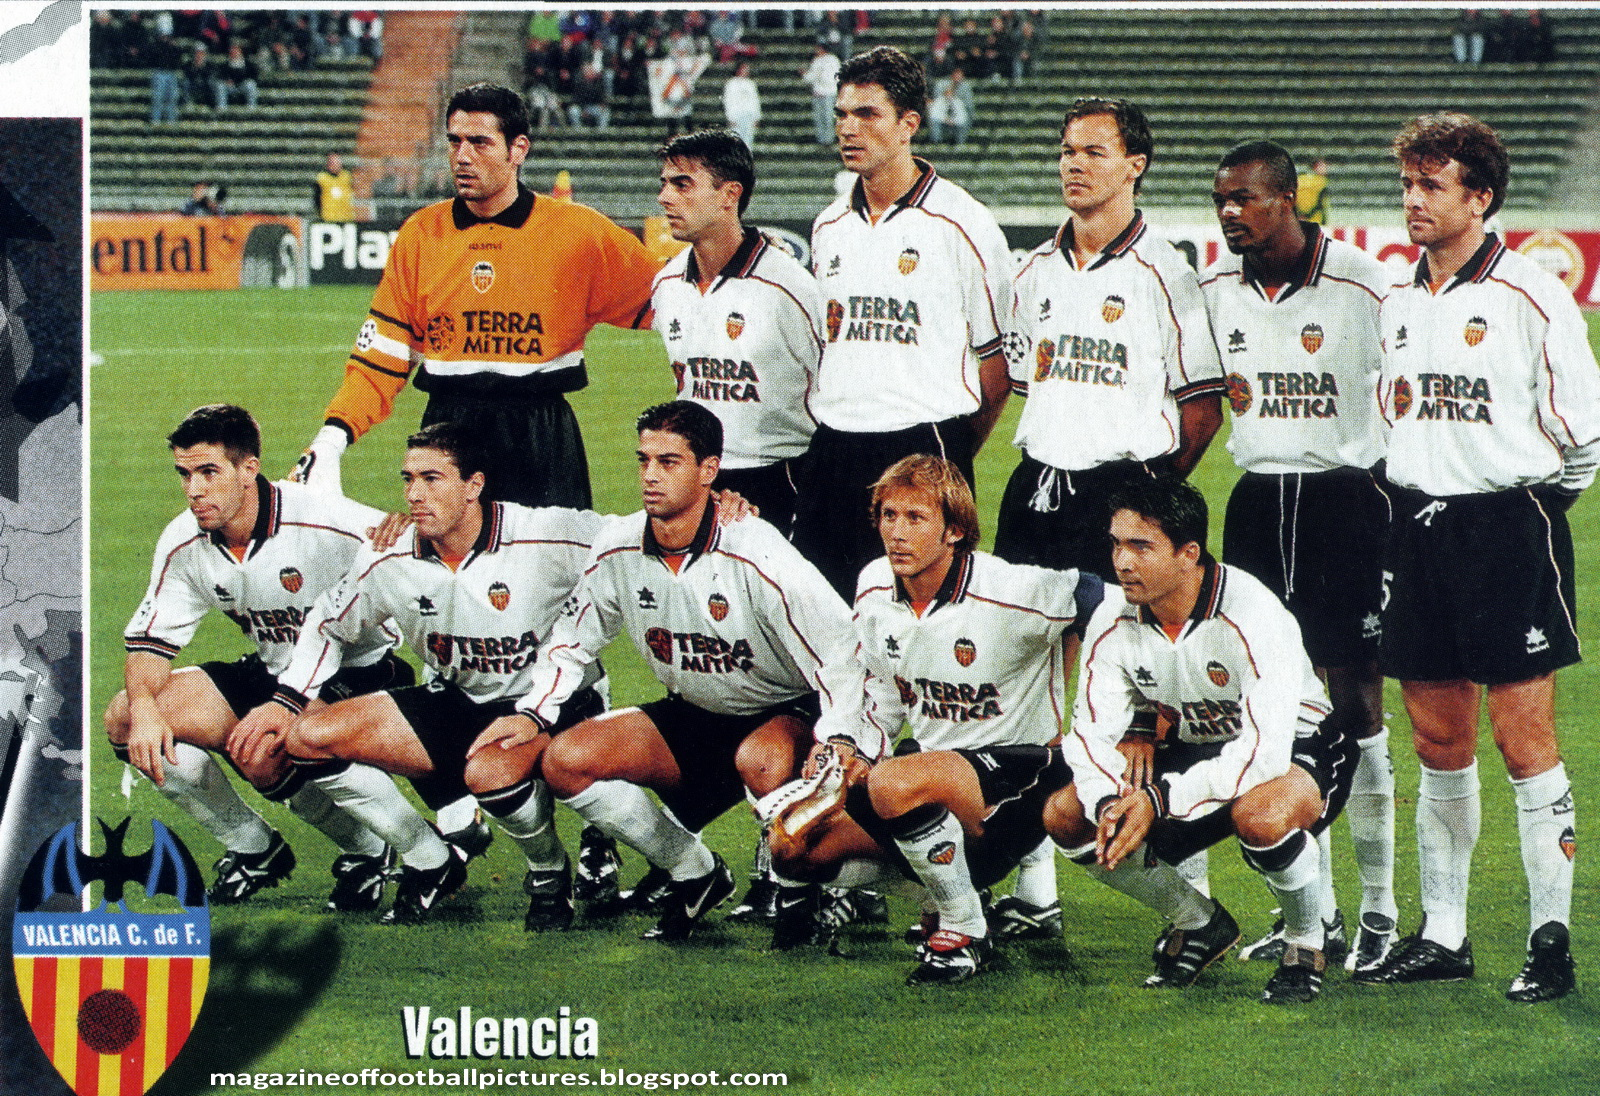 Magazine of football pictures: Champions League 1999/00